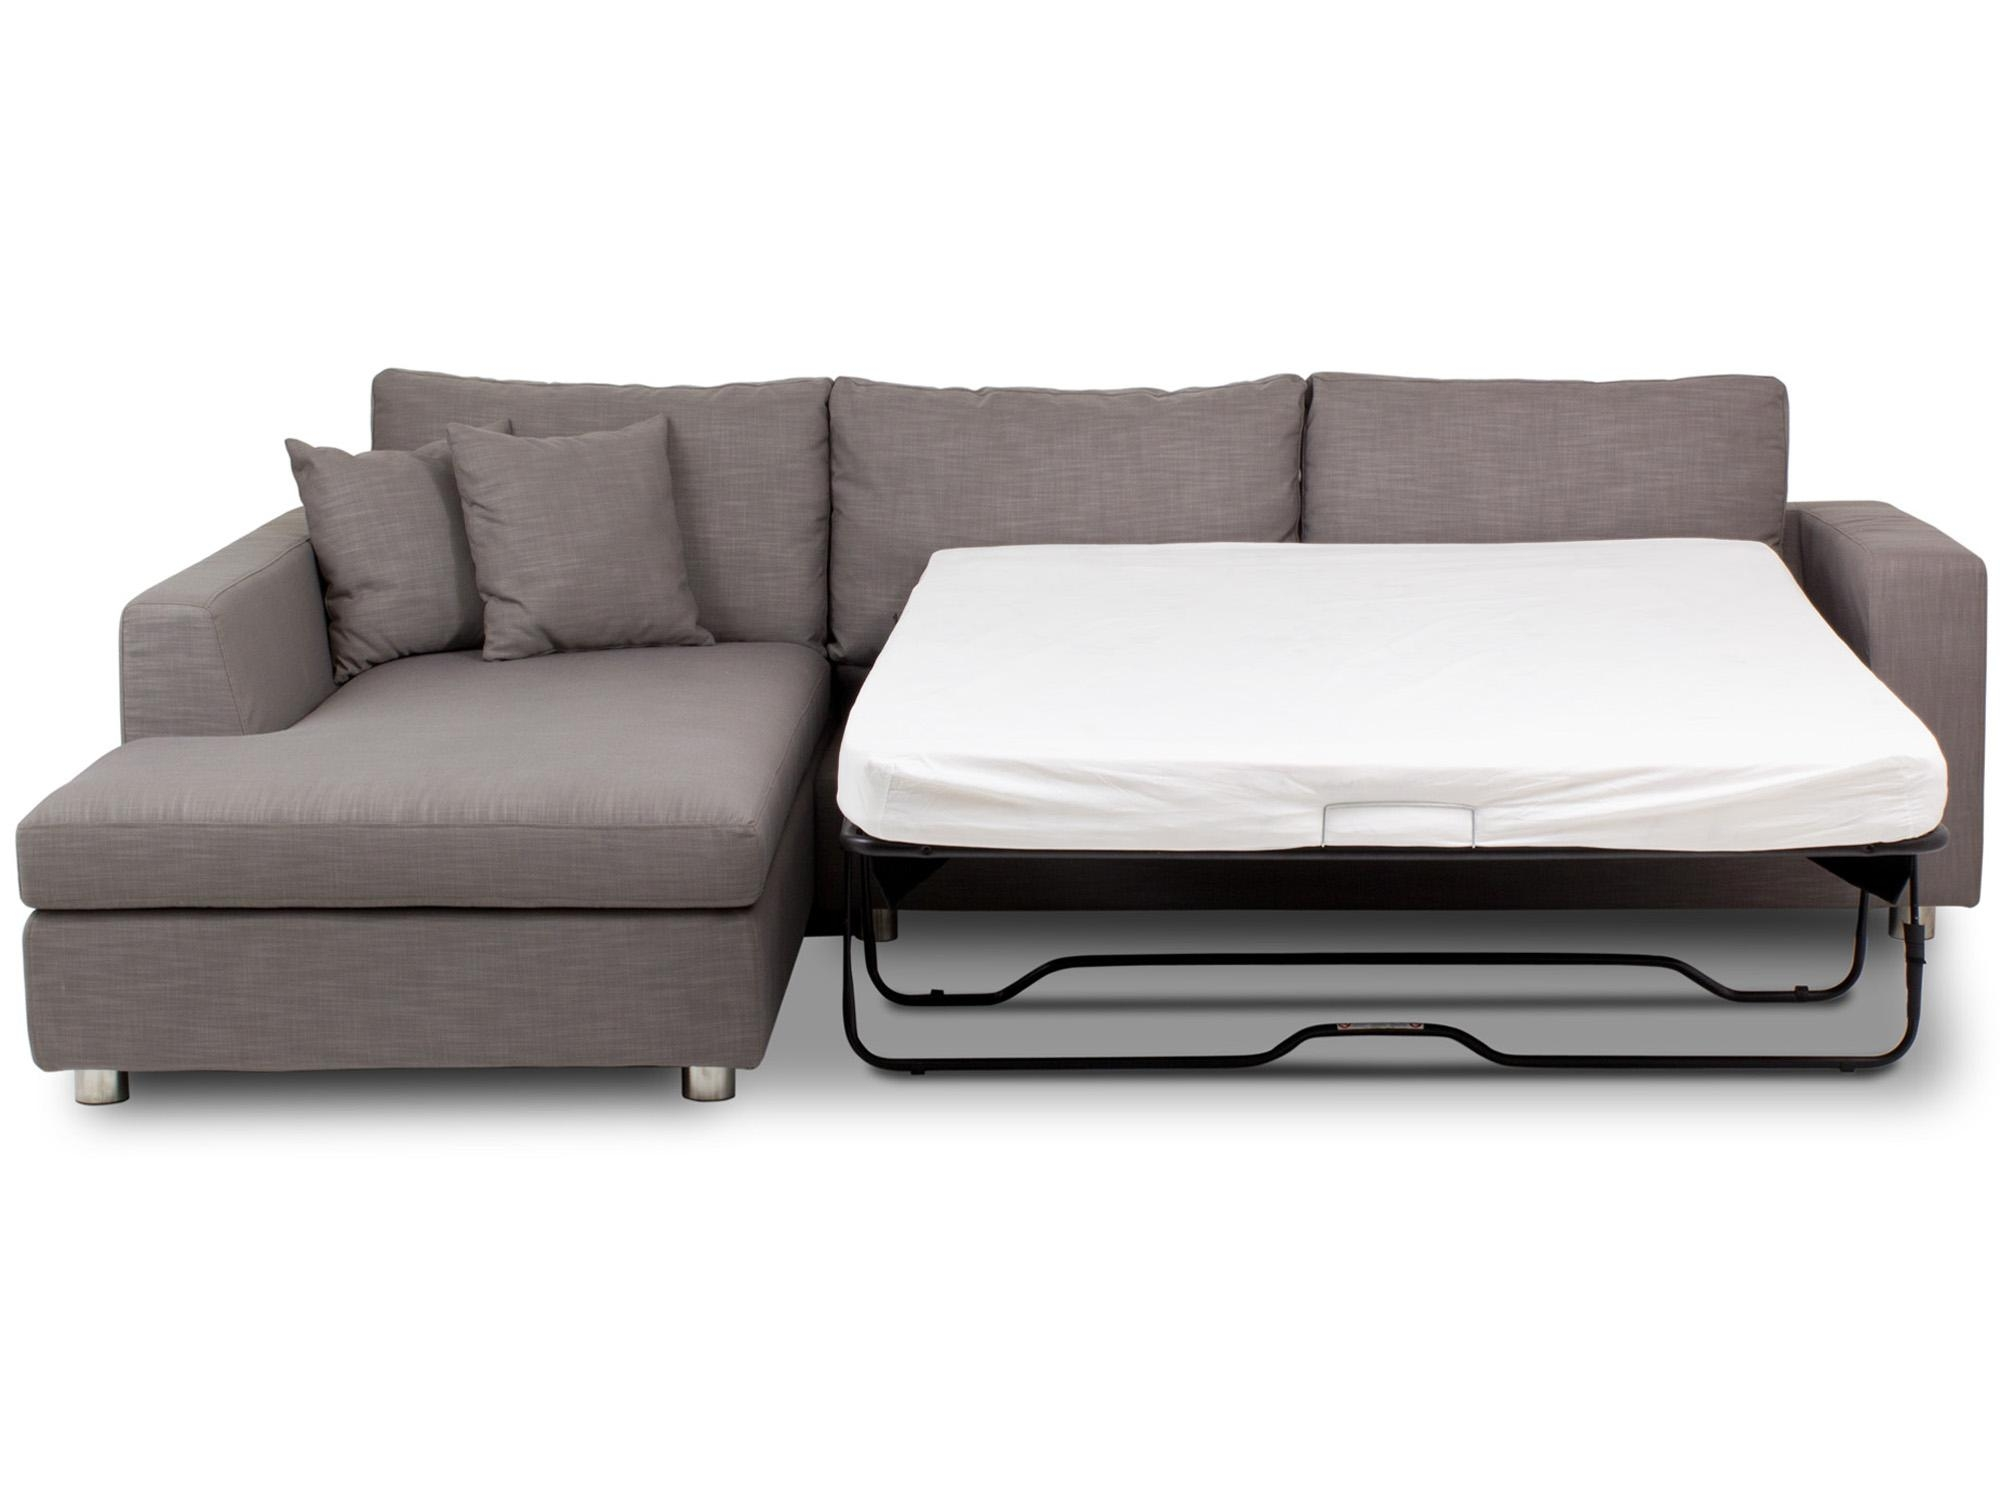 Mondo Storage – Corner Sofa Bed | Loungelovers For Chaise Longue Sofa Beds (View 9 of 20)